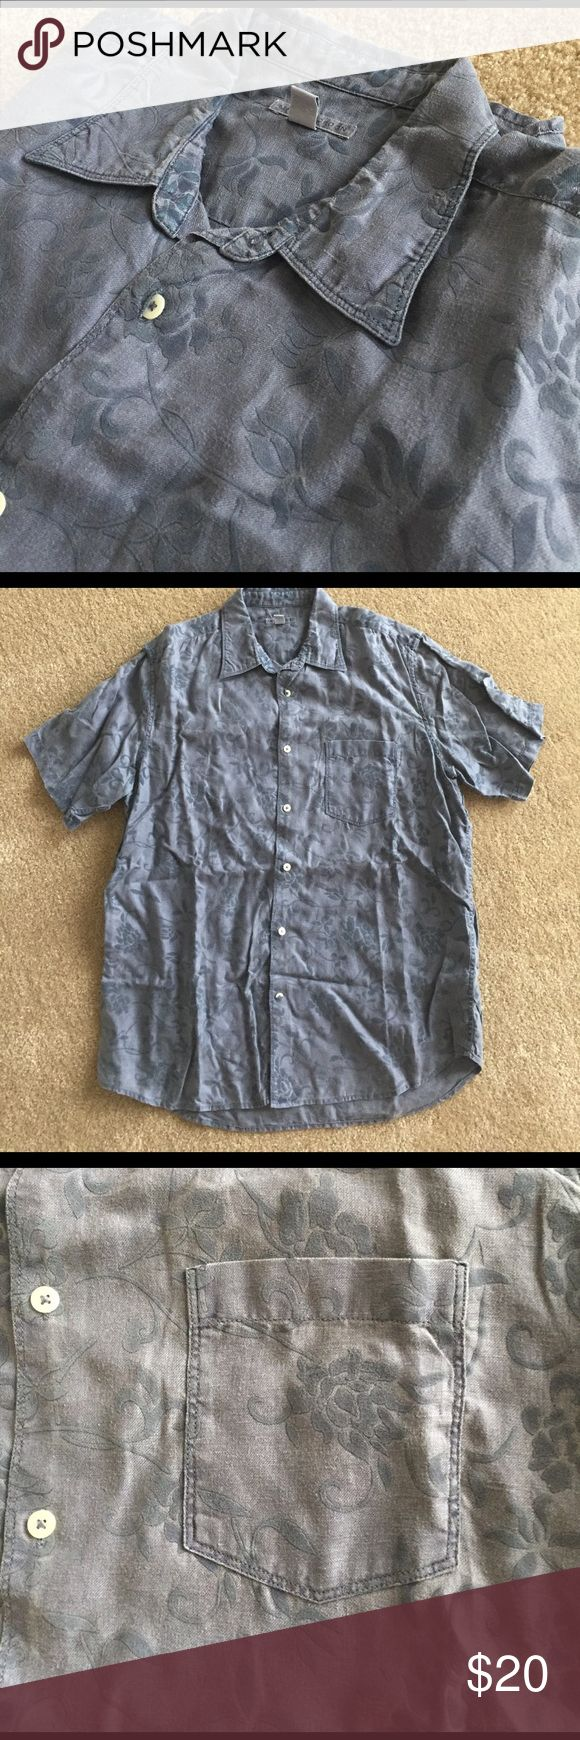 MARTIN LONDON MENS LINEN SHIRT L Used but in perfect condition.  Requires ironing as it just came out of box.  Nordstrom purchase.  100% linen. Perfect spring/summer shirt. martin gordon Shirts Casual Button Down Shirts